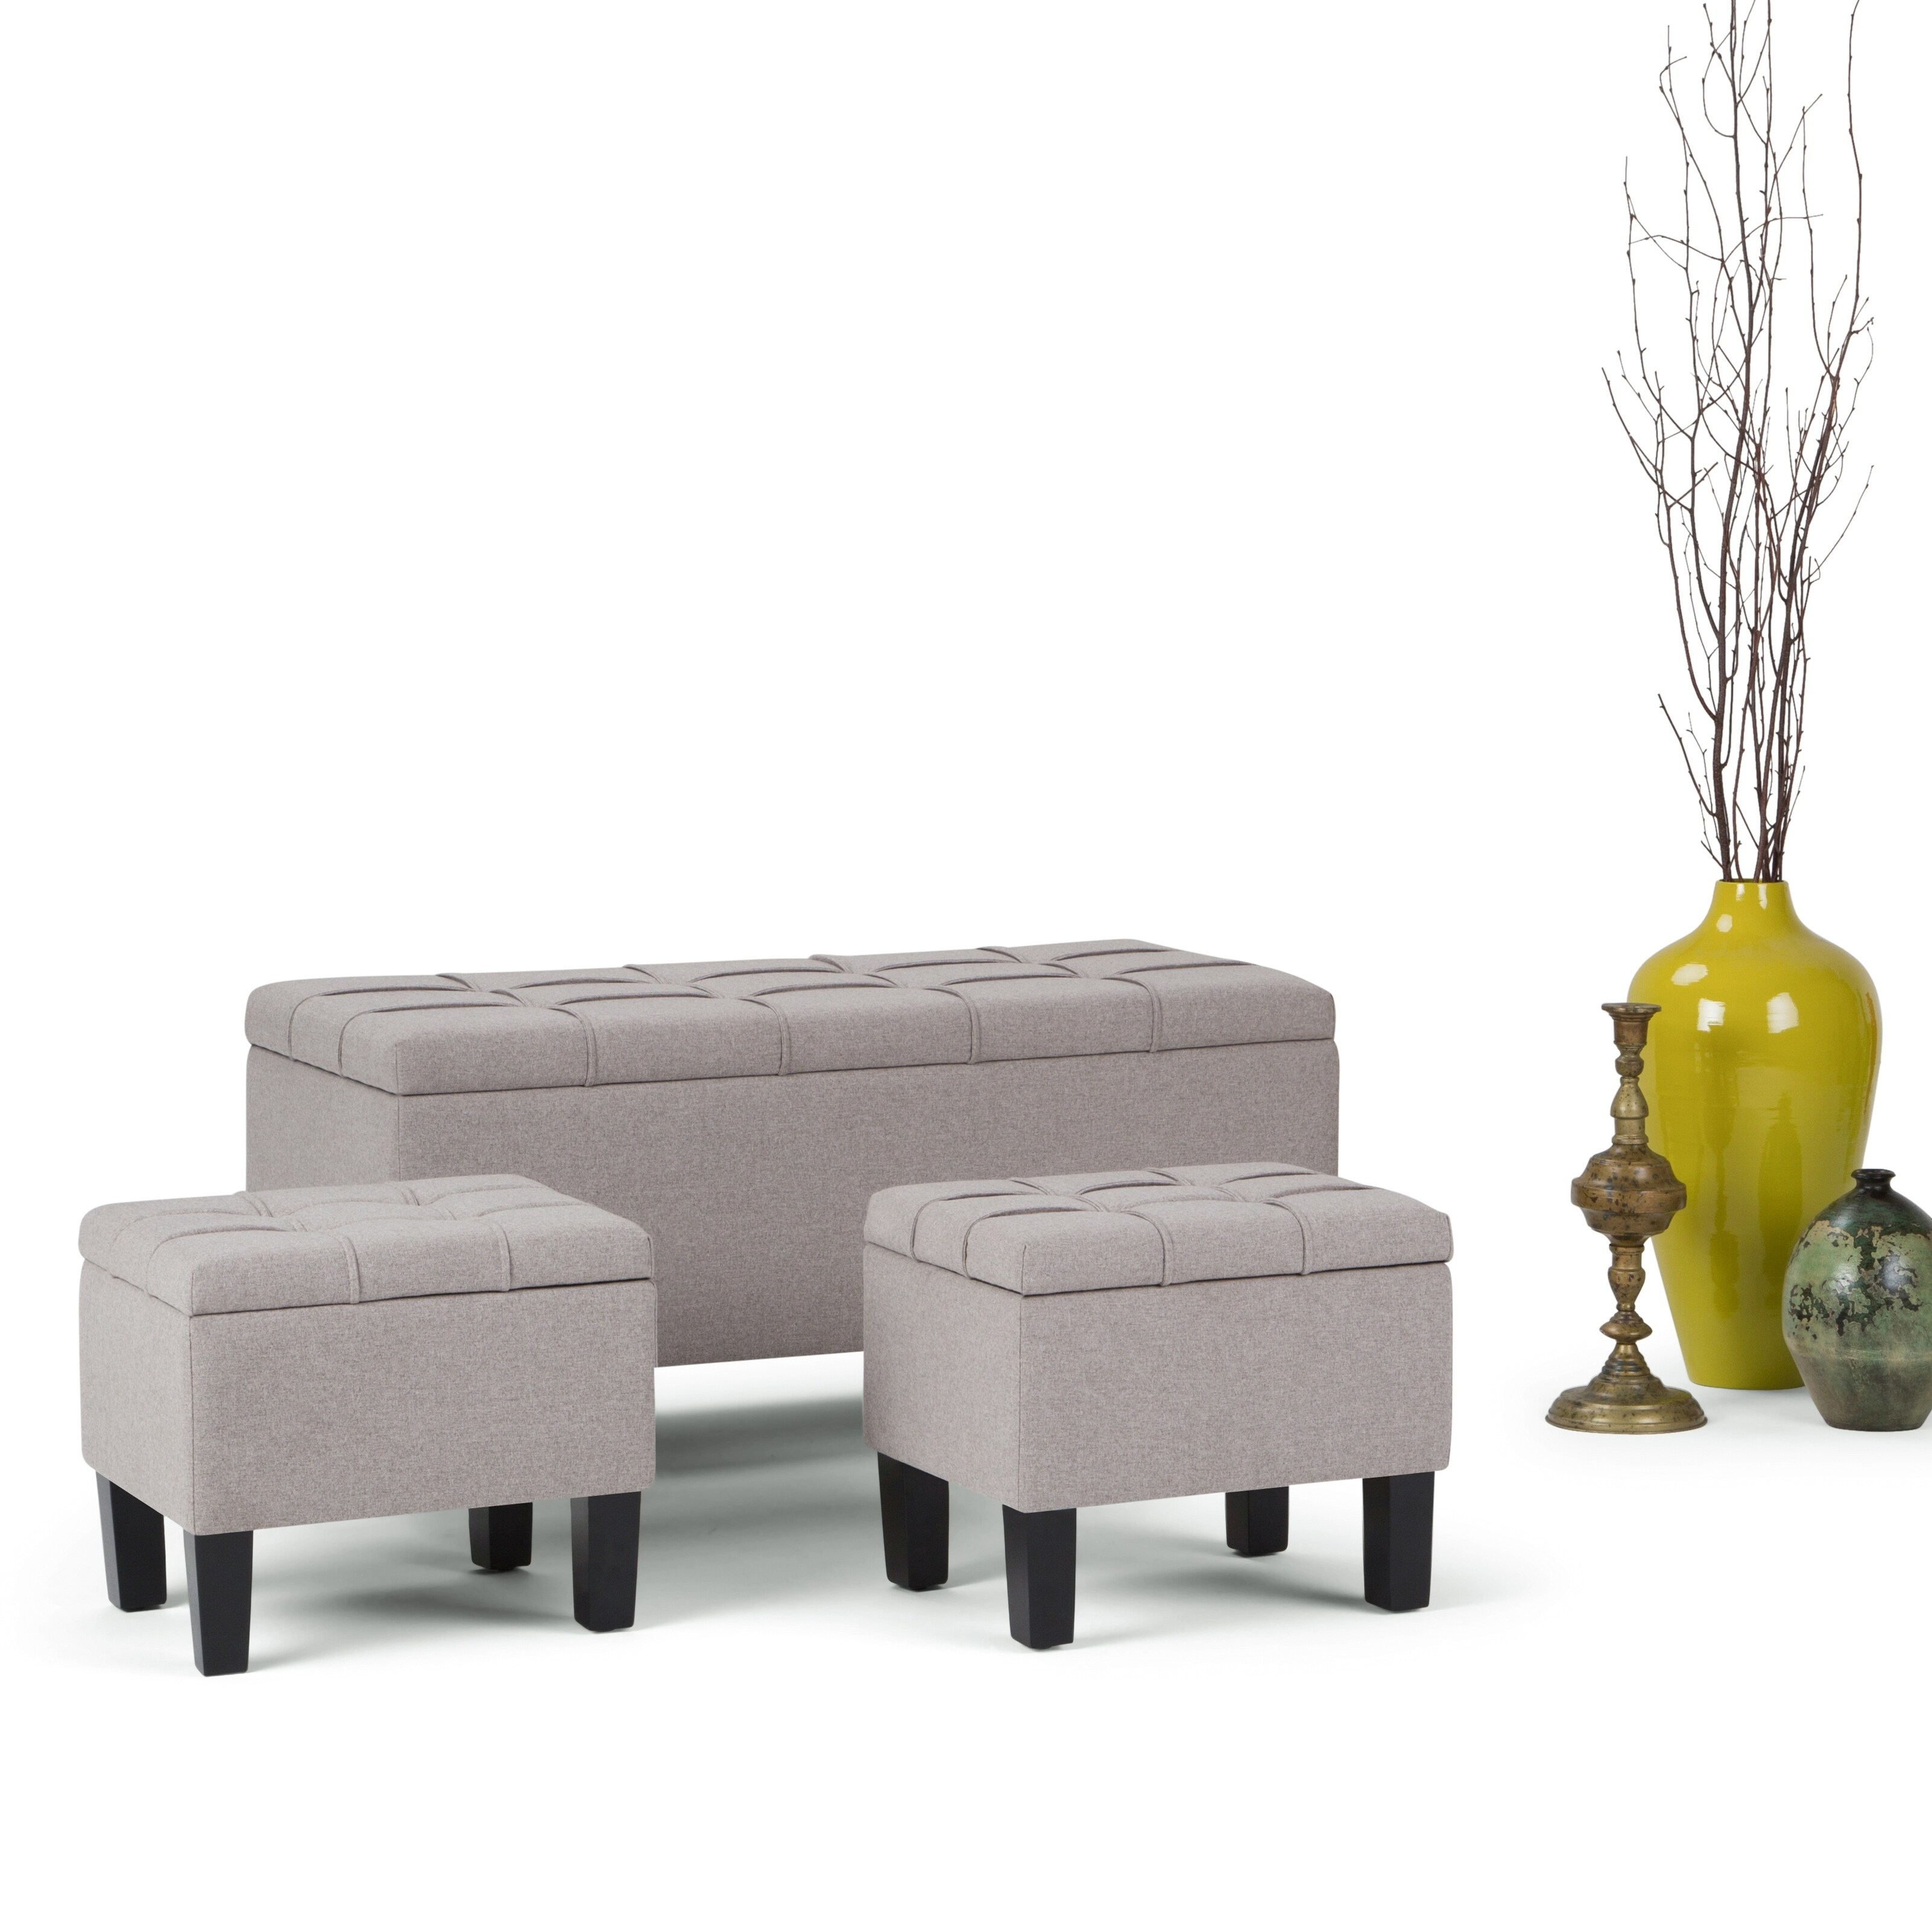 Groovy Wyndenhall Lancaster 3 Piece Storage Ottoman Set Set Of 3 Gmtry Best Dining Table And Chair Ideas Images Gmtryco